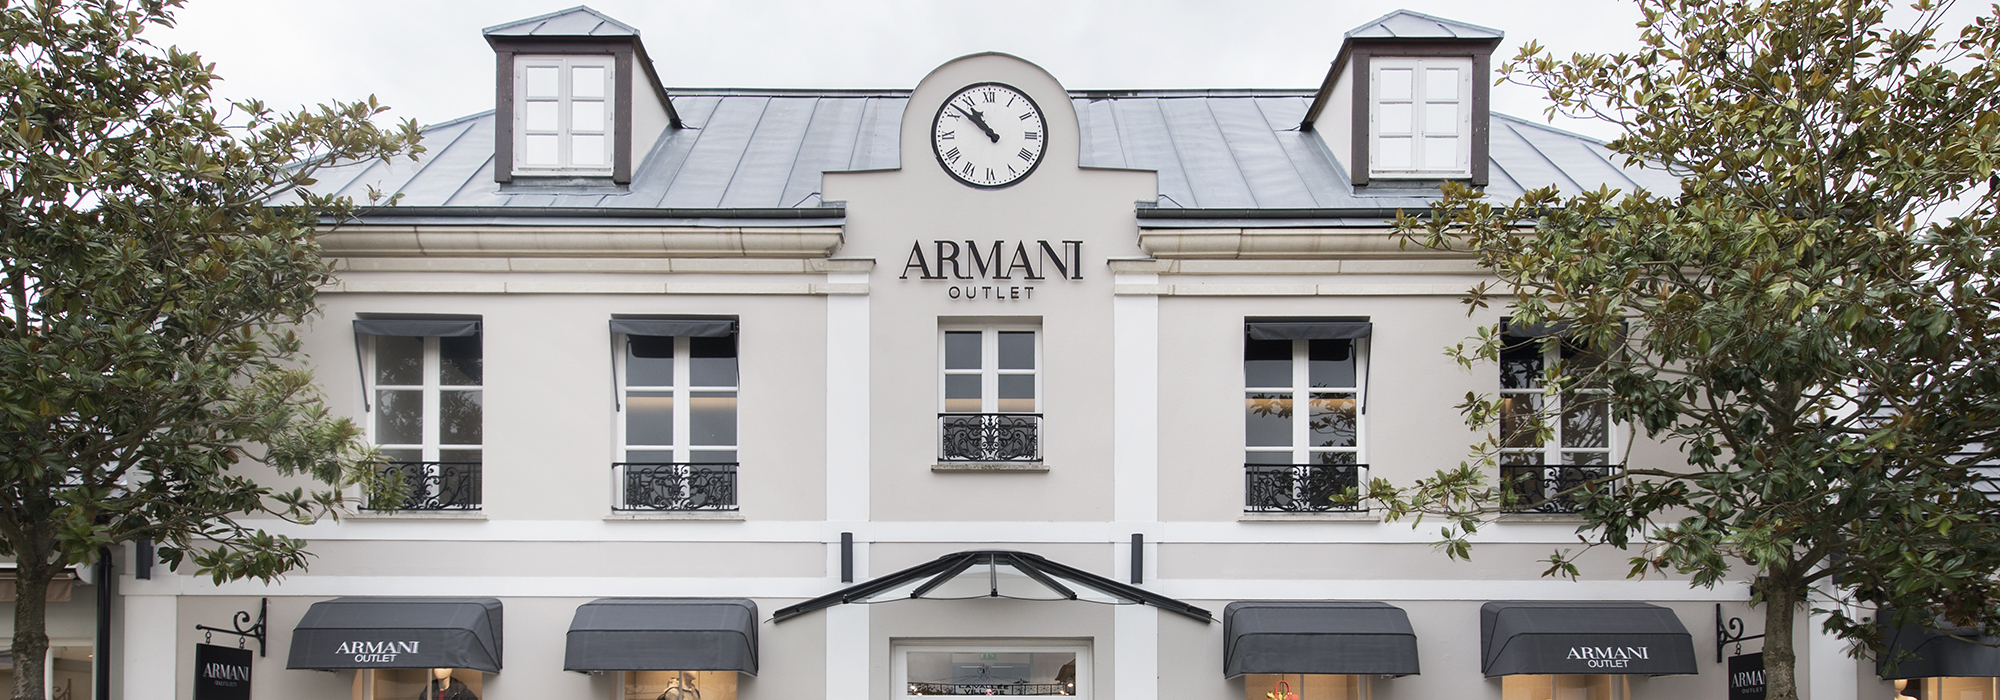 Armani Outlet - Paris b439ae22fcd